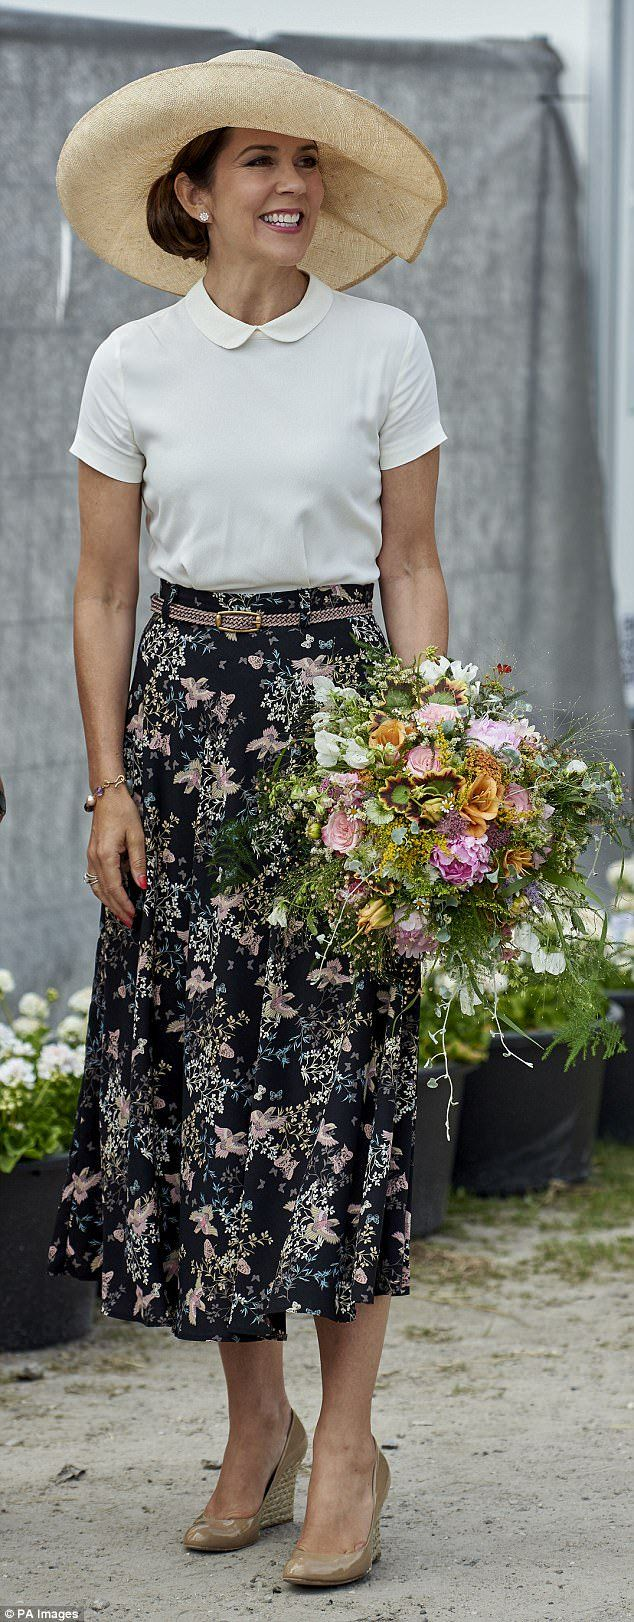 21 June 2017 - Princess Mary opens the CPHGarden 2017 - skirt by Andiata